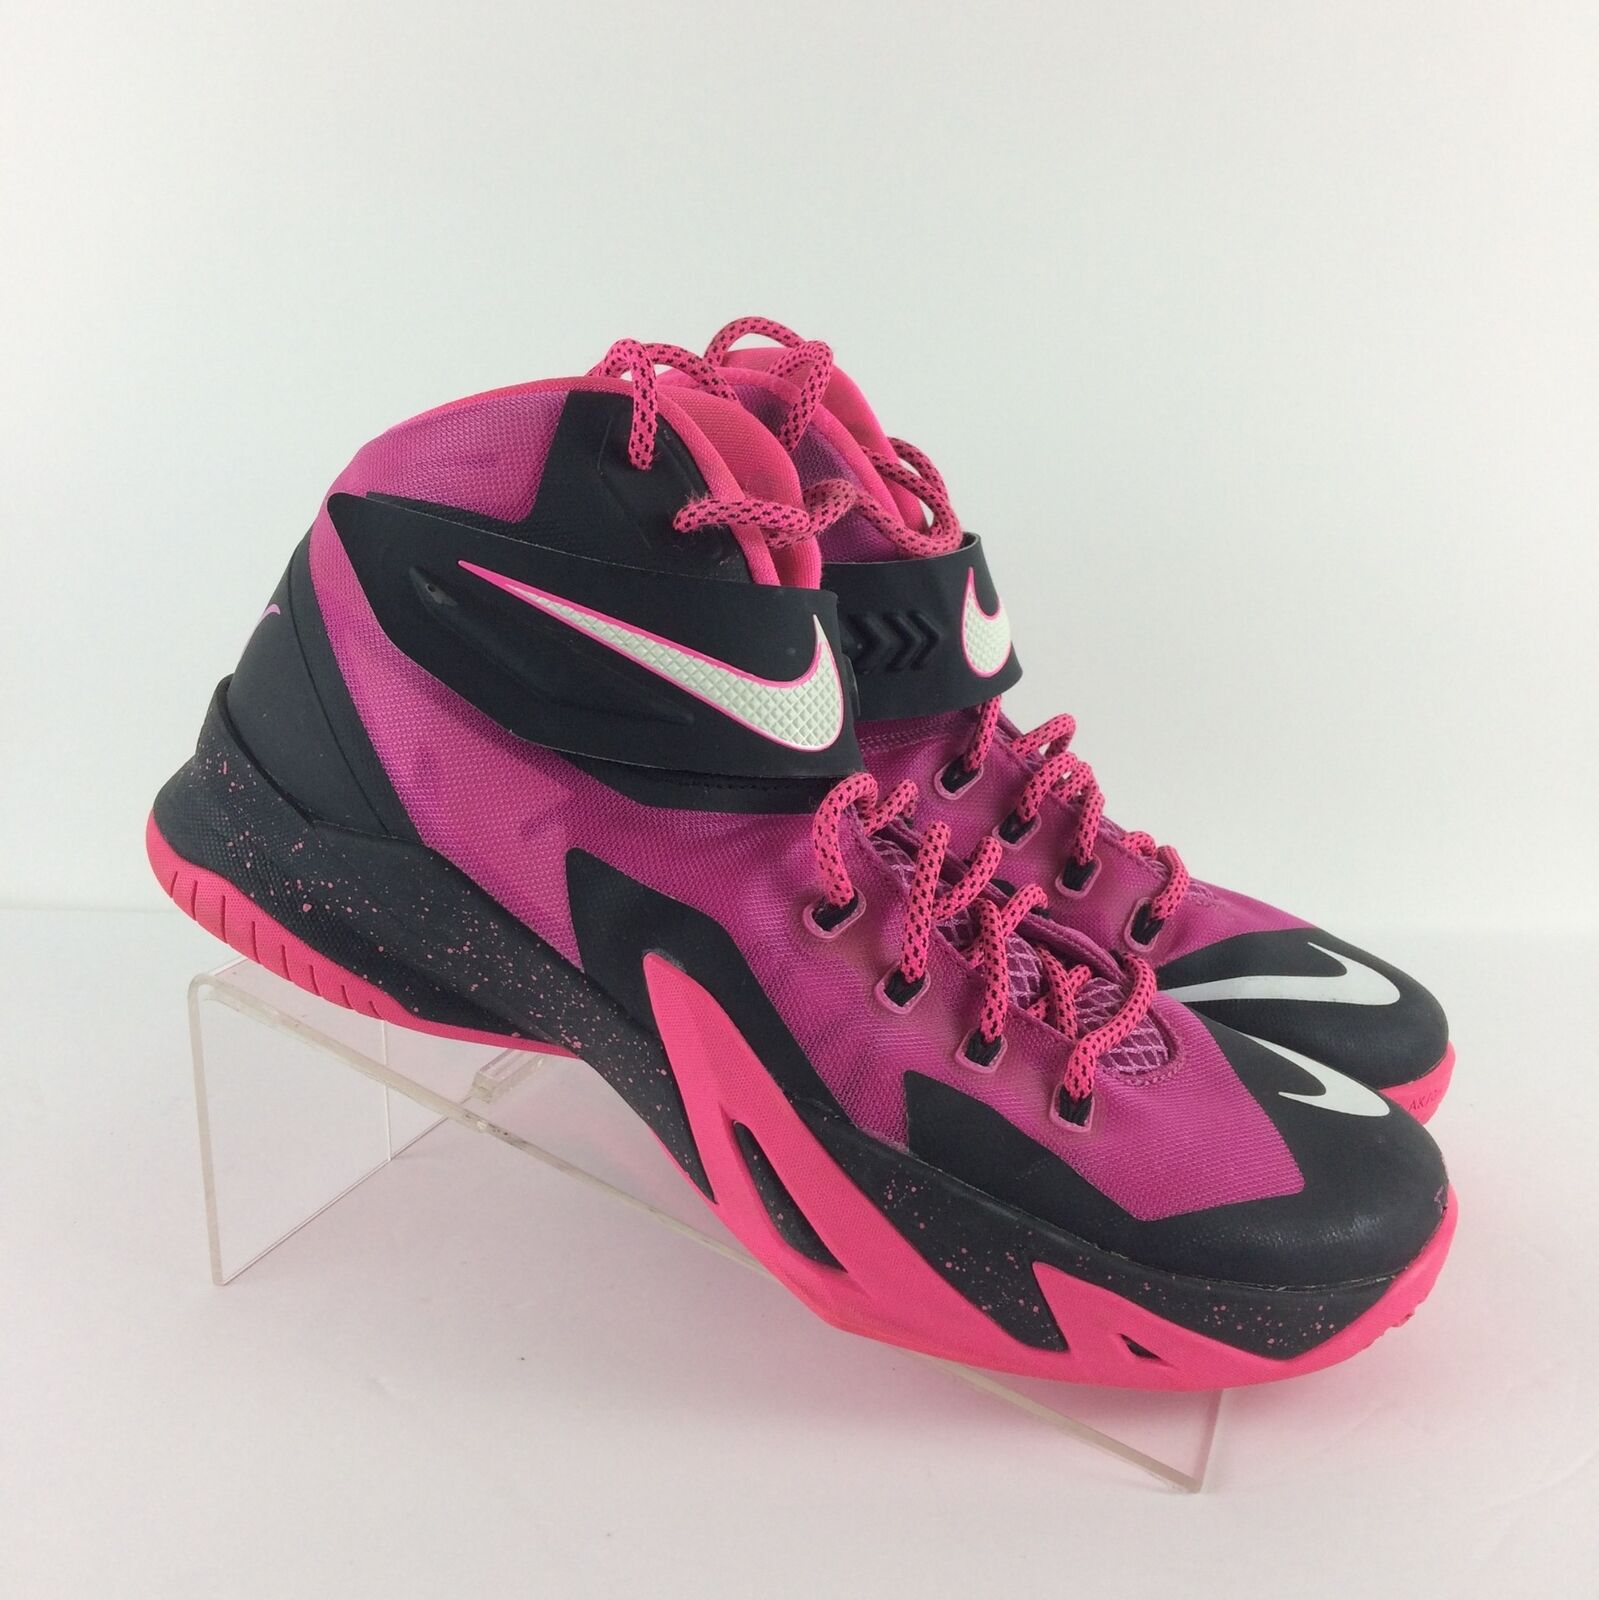 Nike Mens Lebron Soldier VIII 8 shoes Breast Cancer, Pink 653641-610, Size 10.5